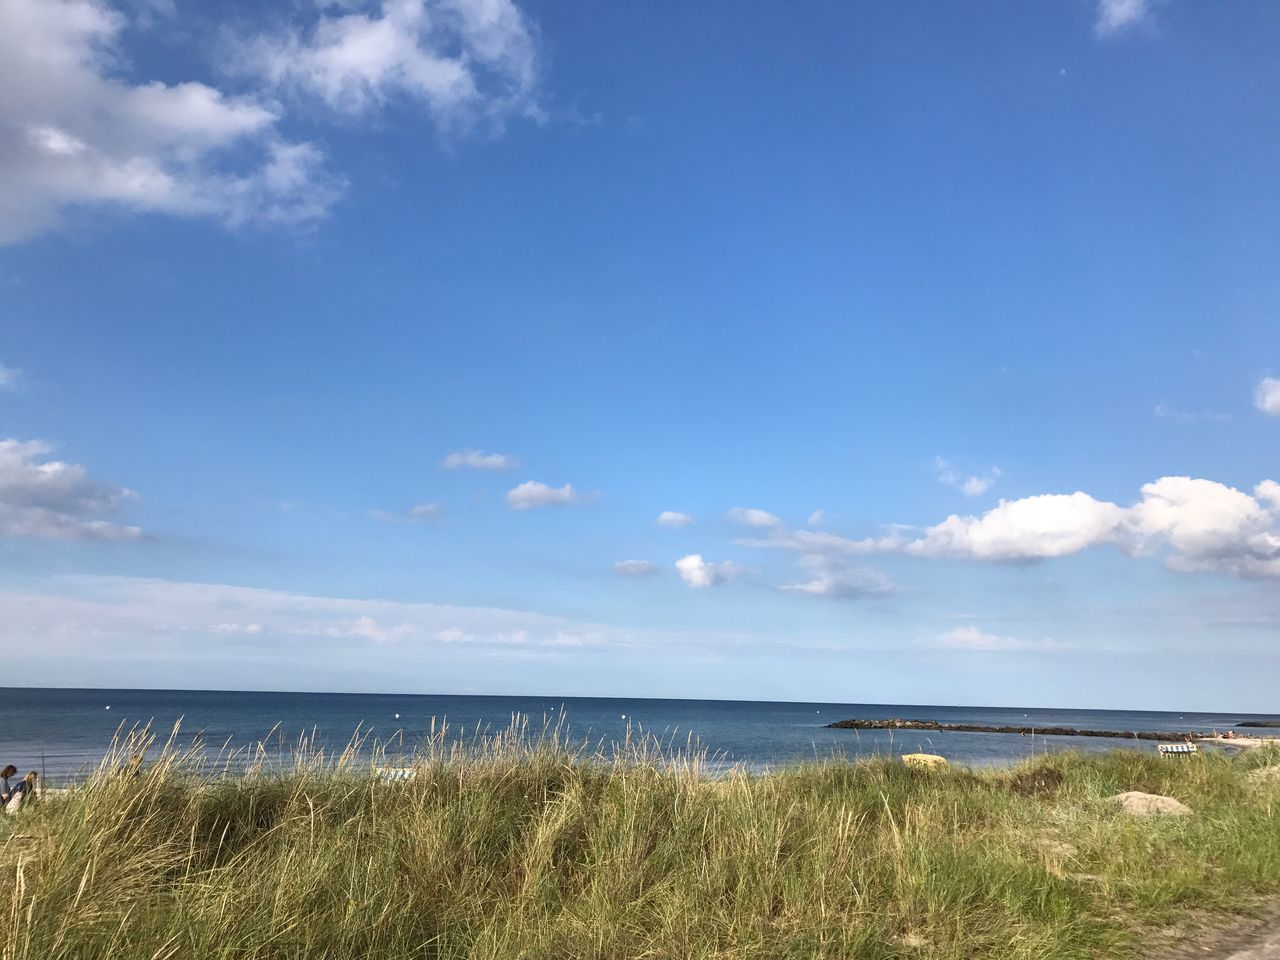 sea, horizon over water, tranquil scene, nature, scenics, grass, water, beach, tranquility, beauty in nature, sky, outdoors, marram grass, day, cloud - sky, no people, blue, vacations, travel destinations, sunlight, growth